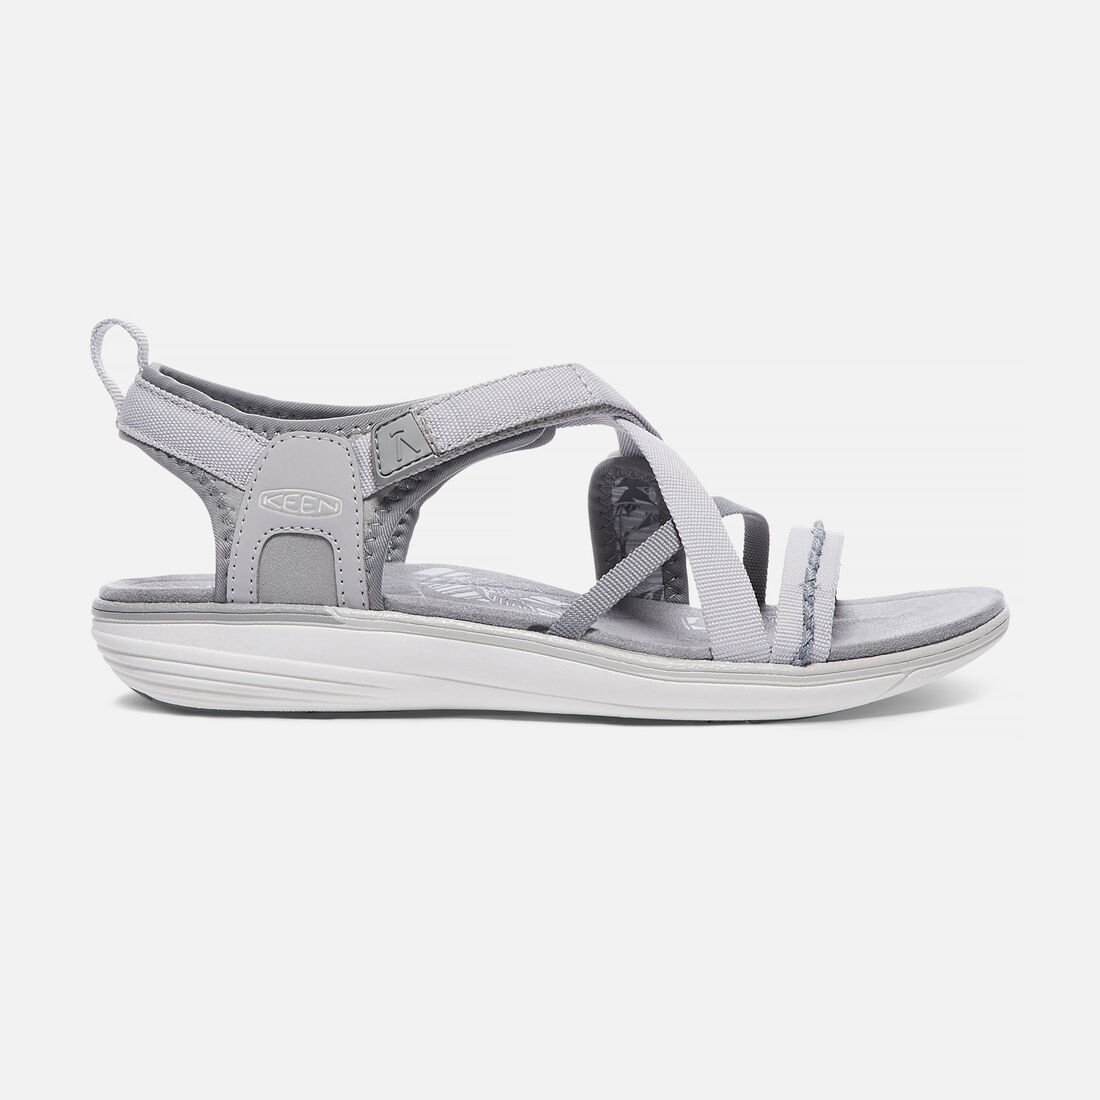 WOMEN'S MAYA STRAP SANDALS in Neutral Grey/Vapor - large view.